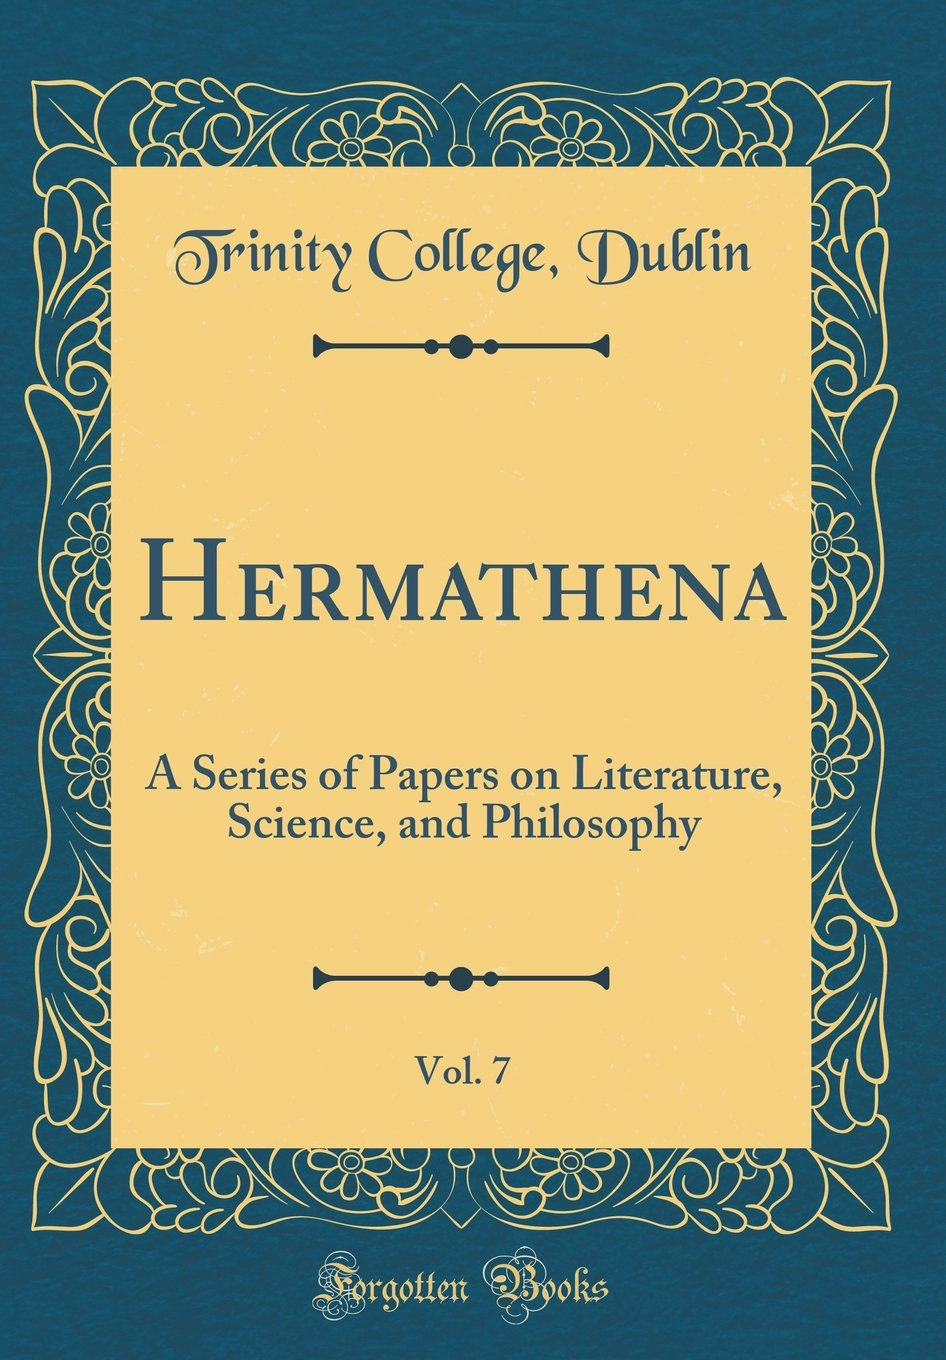 Hermathena, Vol. 7: A Series of Papers on Literature, Science, and Philosophy (Classic Reprint) PDF